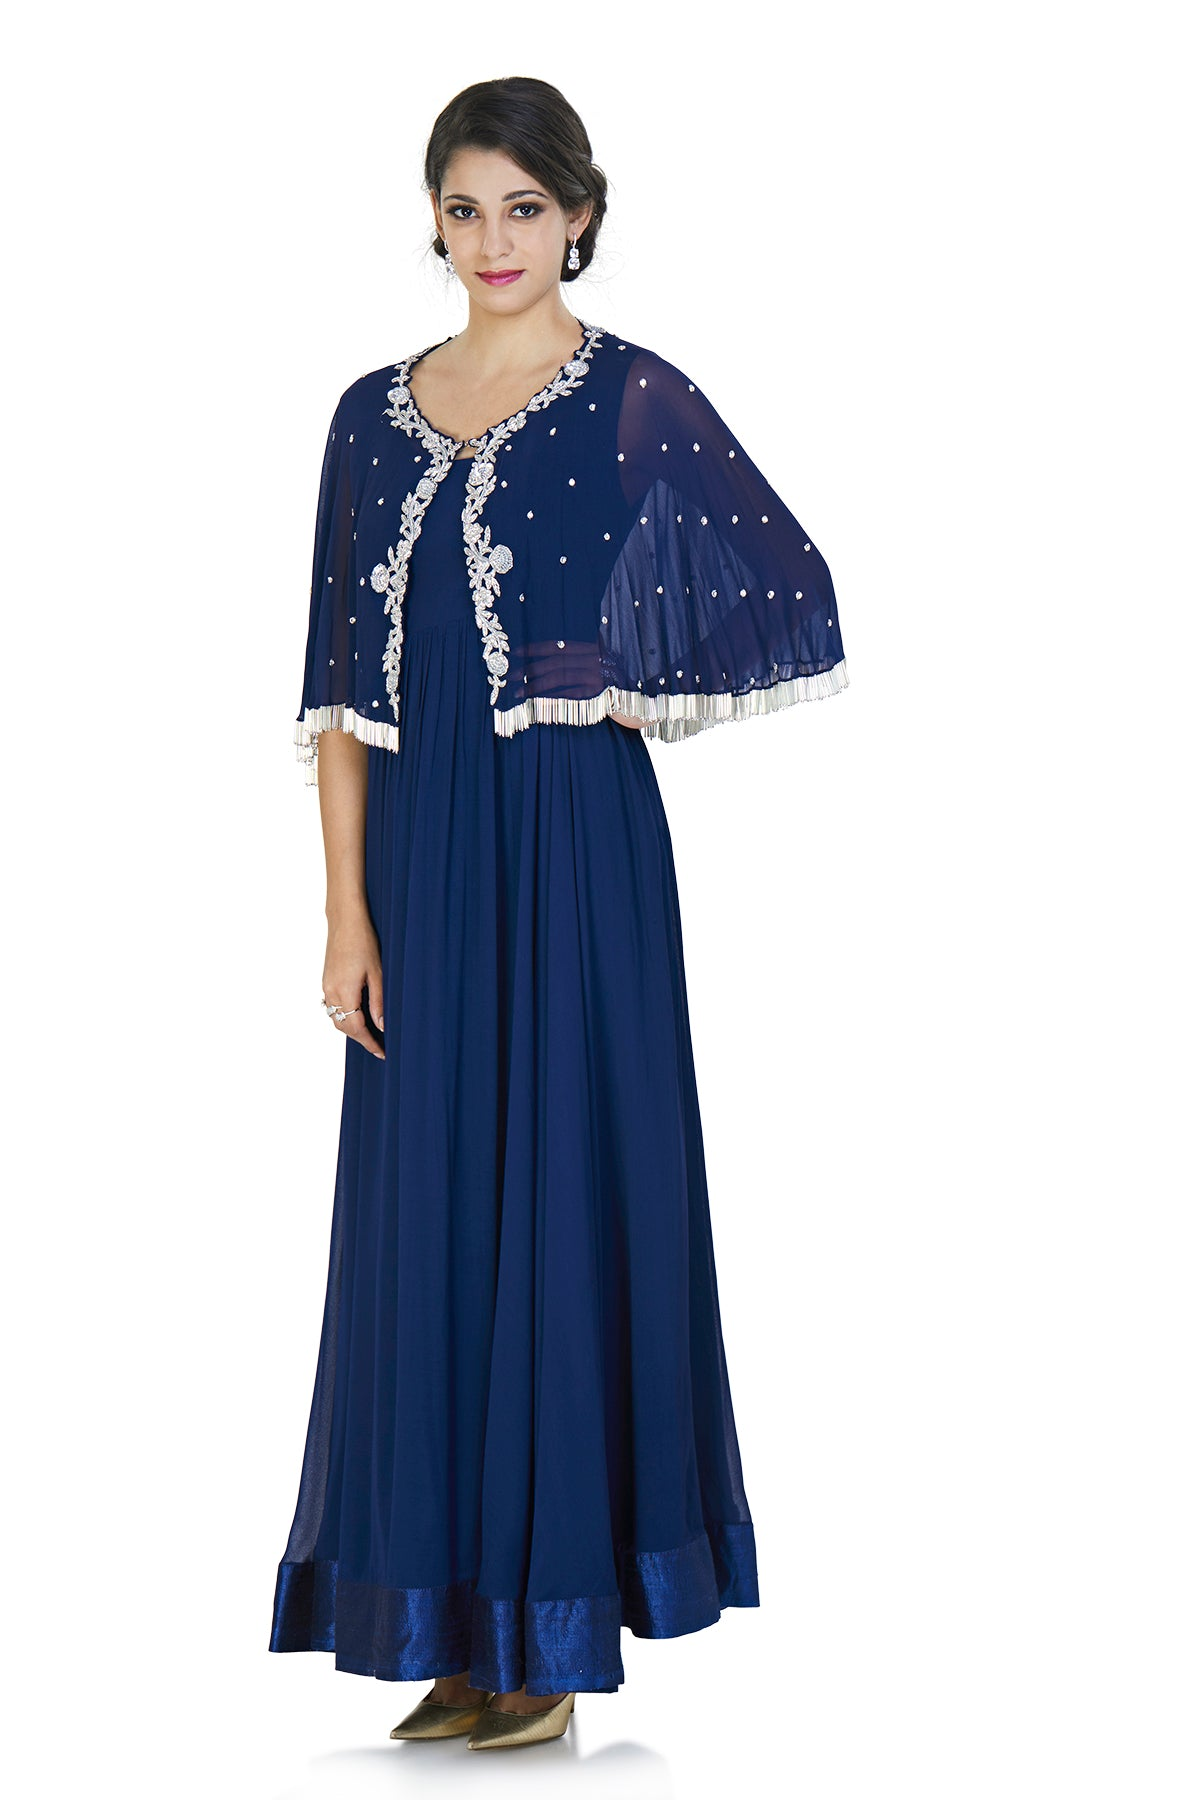 Dark blue georgette anarkali gown with a cape that is filled with intricate silver glass beads embroidery and tassels at the bottom.